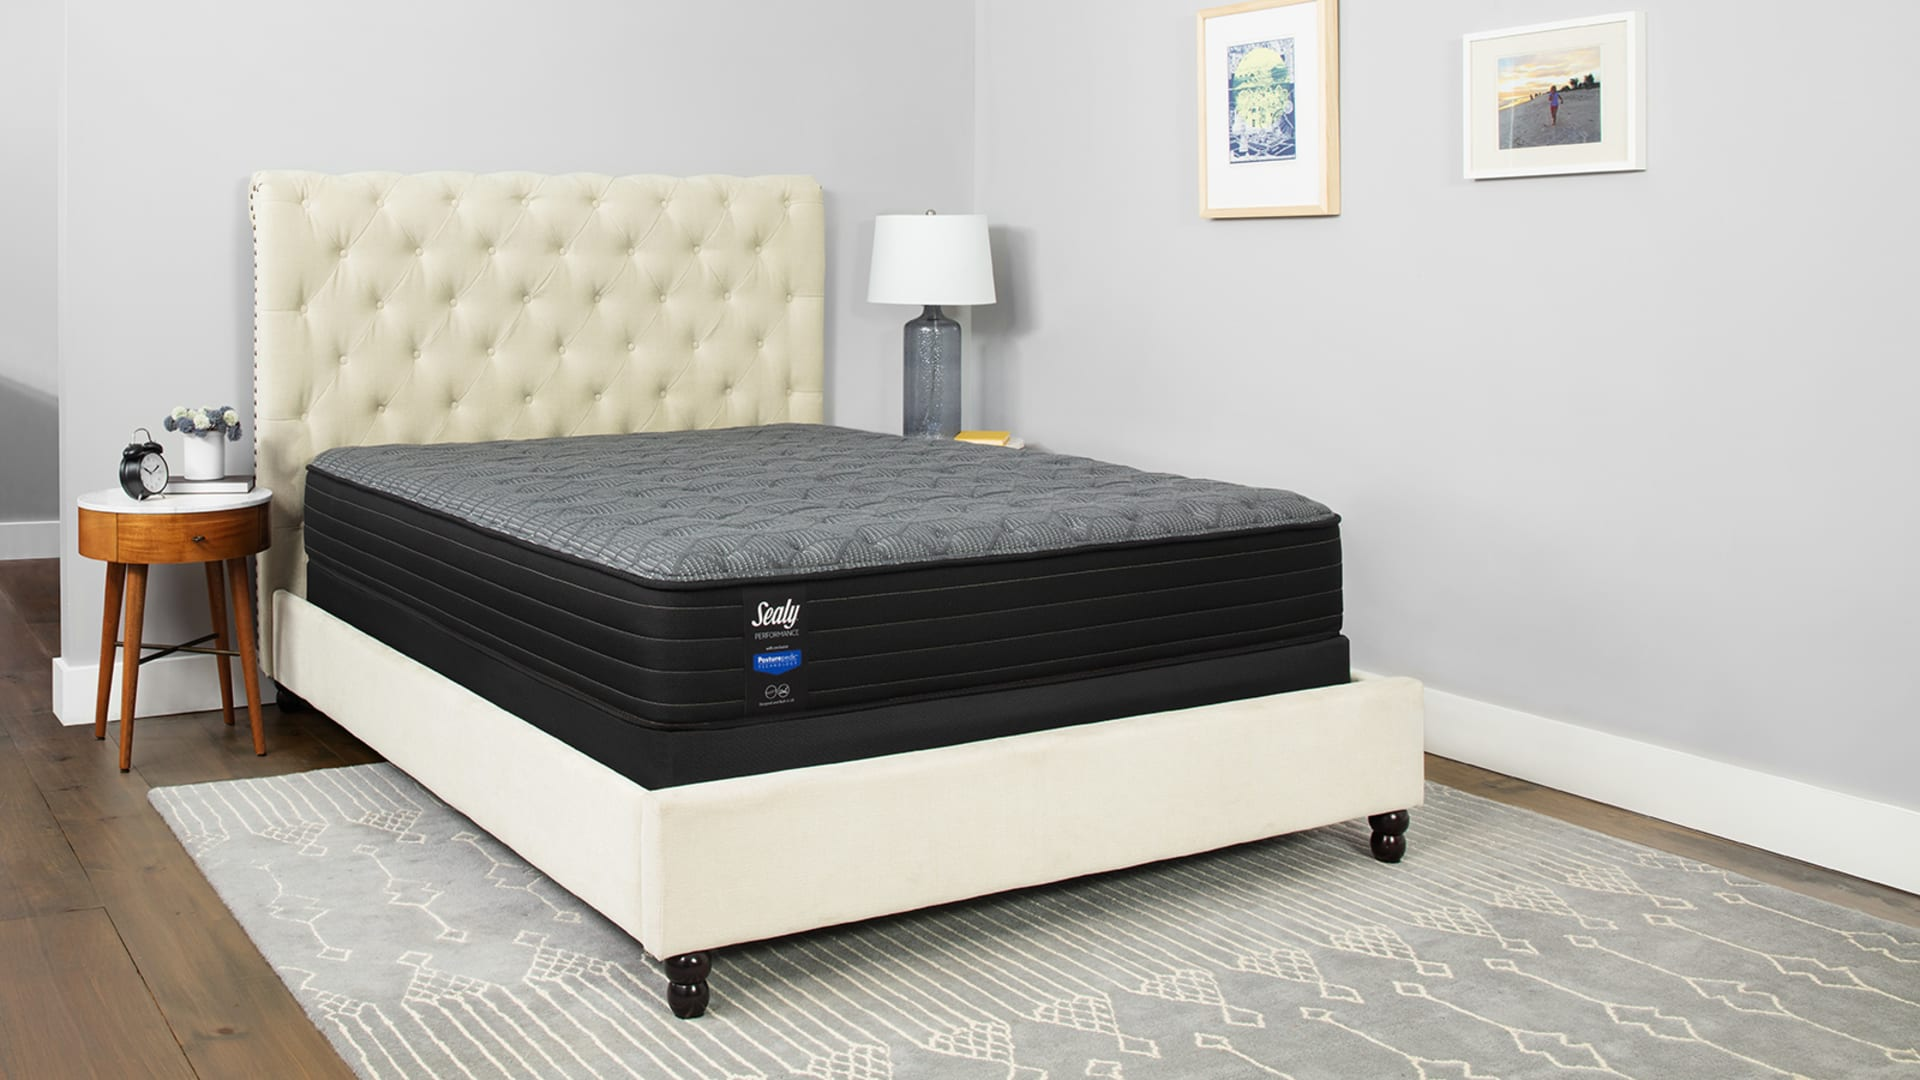 Queen Size Elm Avenue Plush Mattress